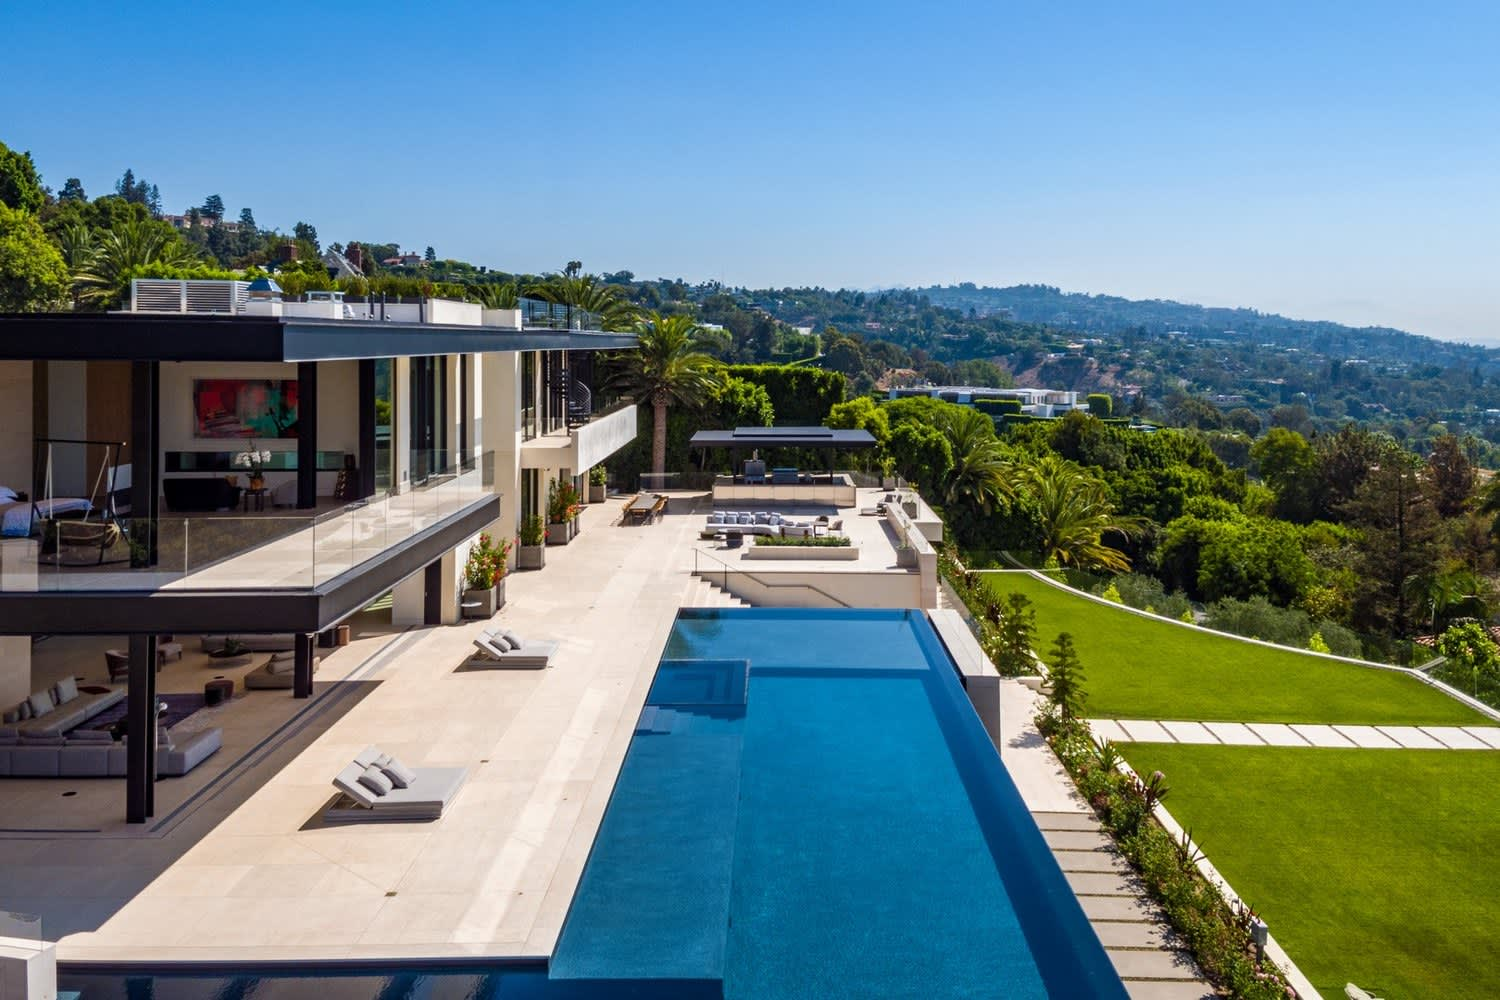 Celebrity surgeon went 'all in' on $180 million Bel Air mansion, then came the high-end housing glut